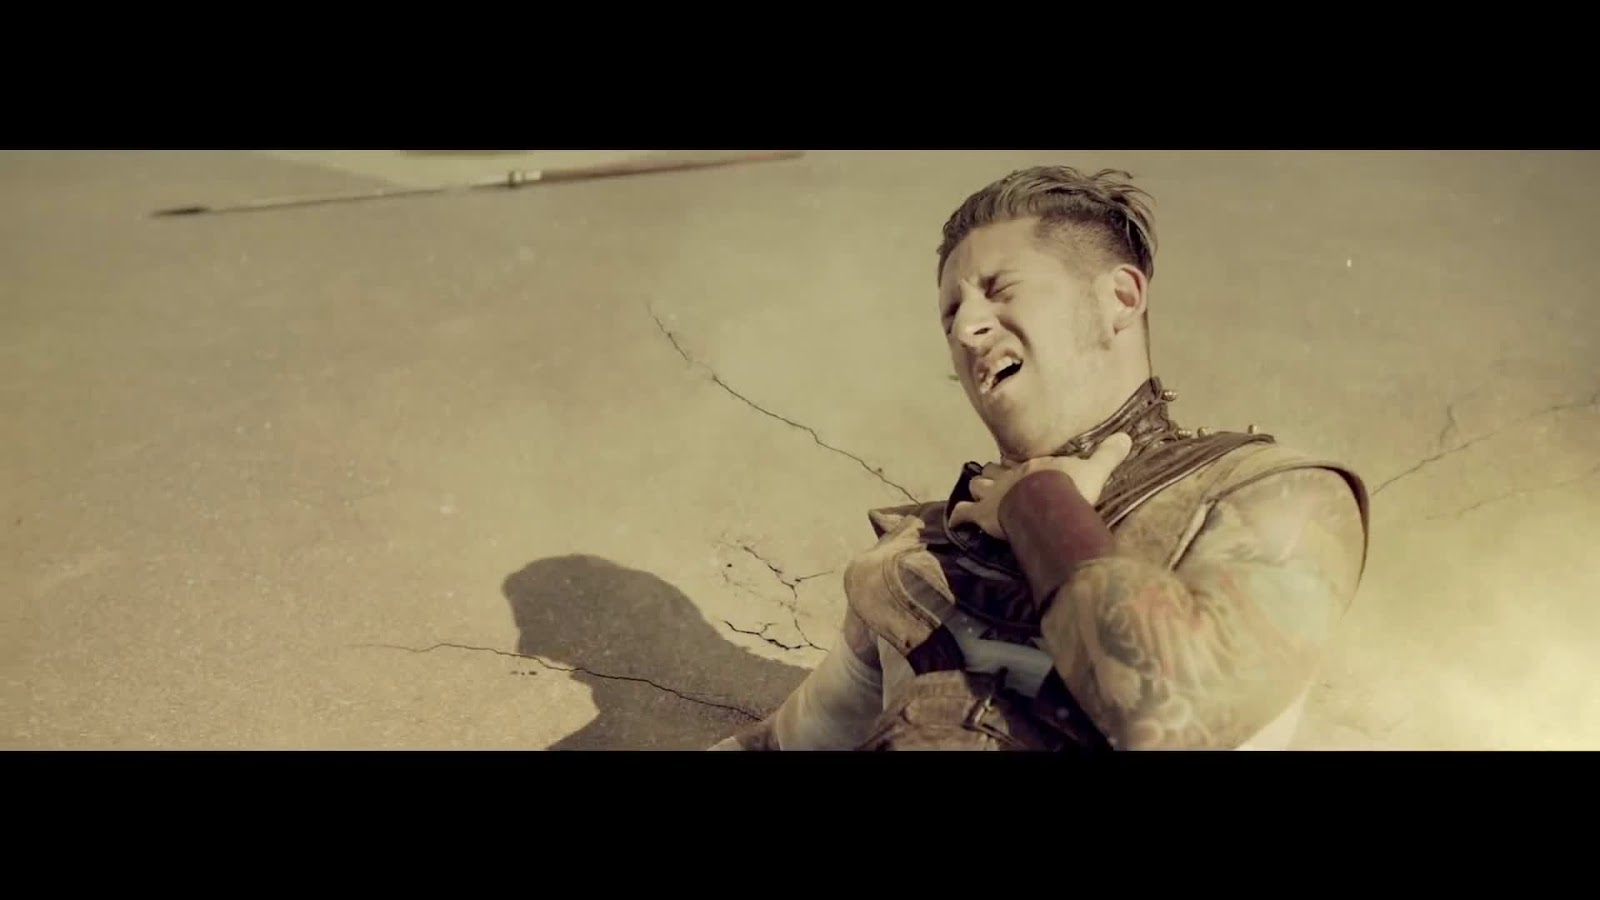 Fall Out Boy - Centuries (Official Video) - Wallpapers ...